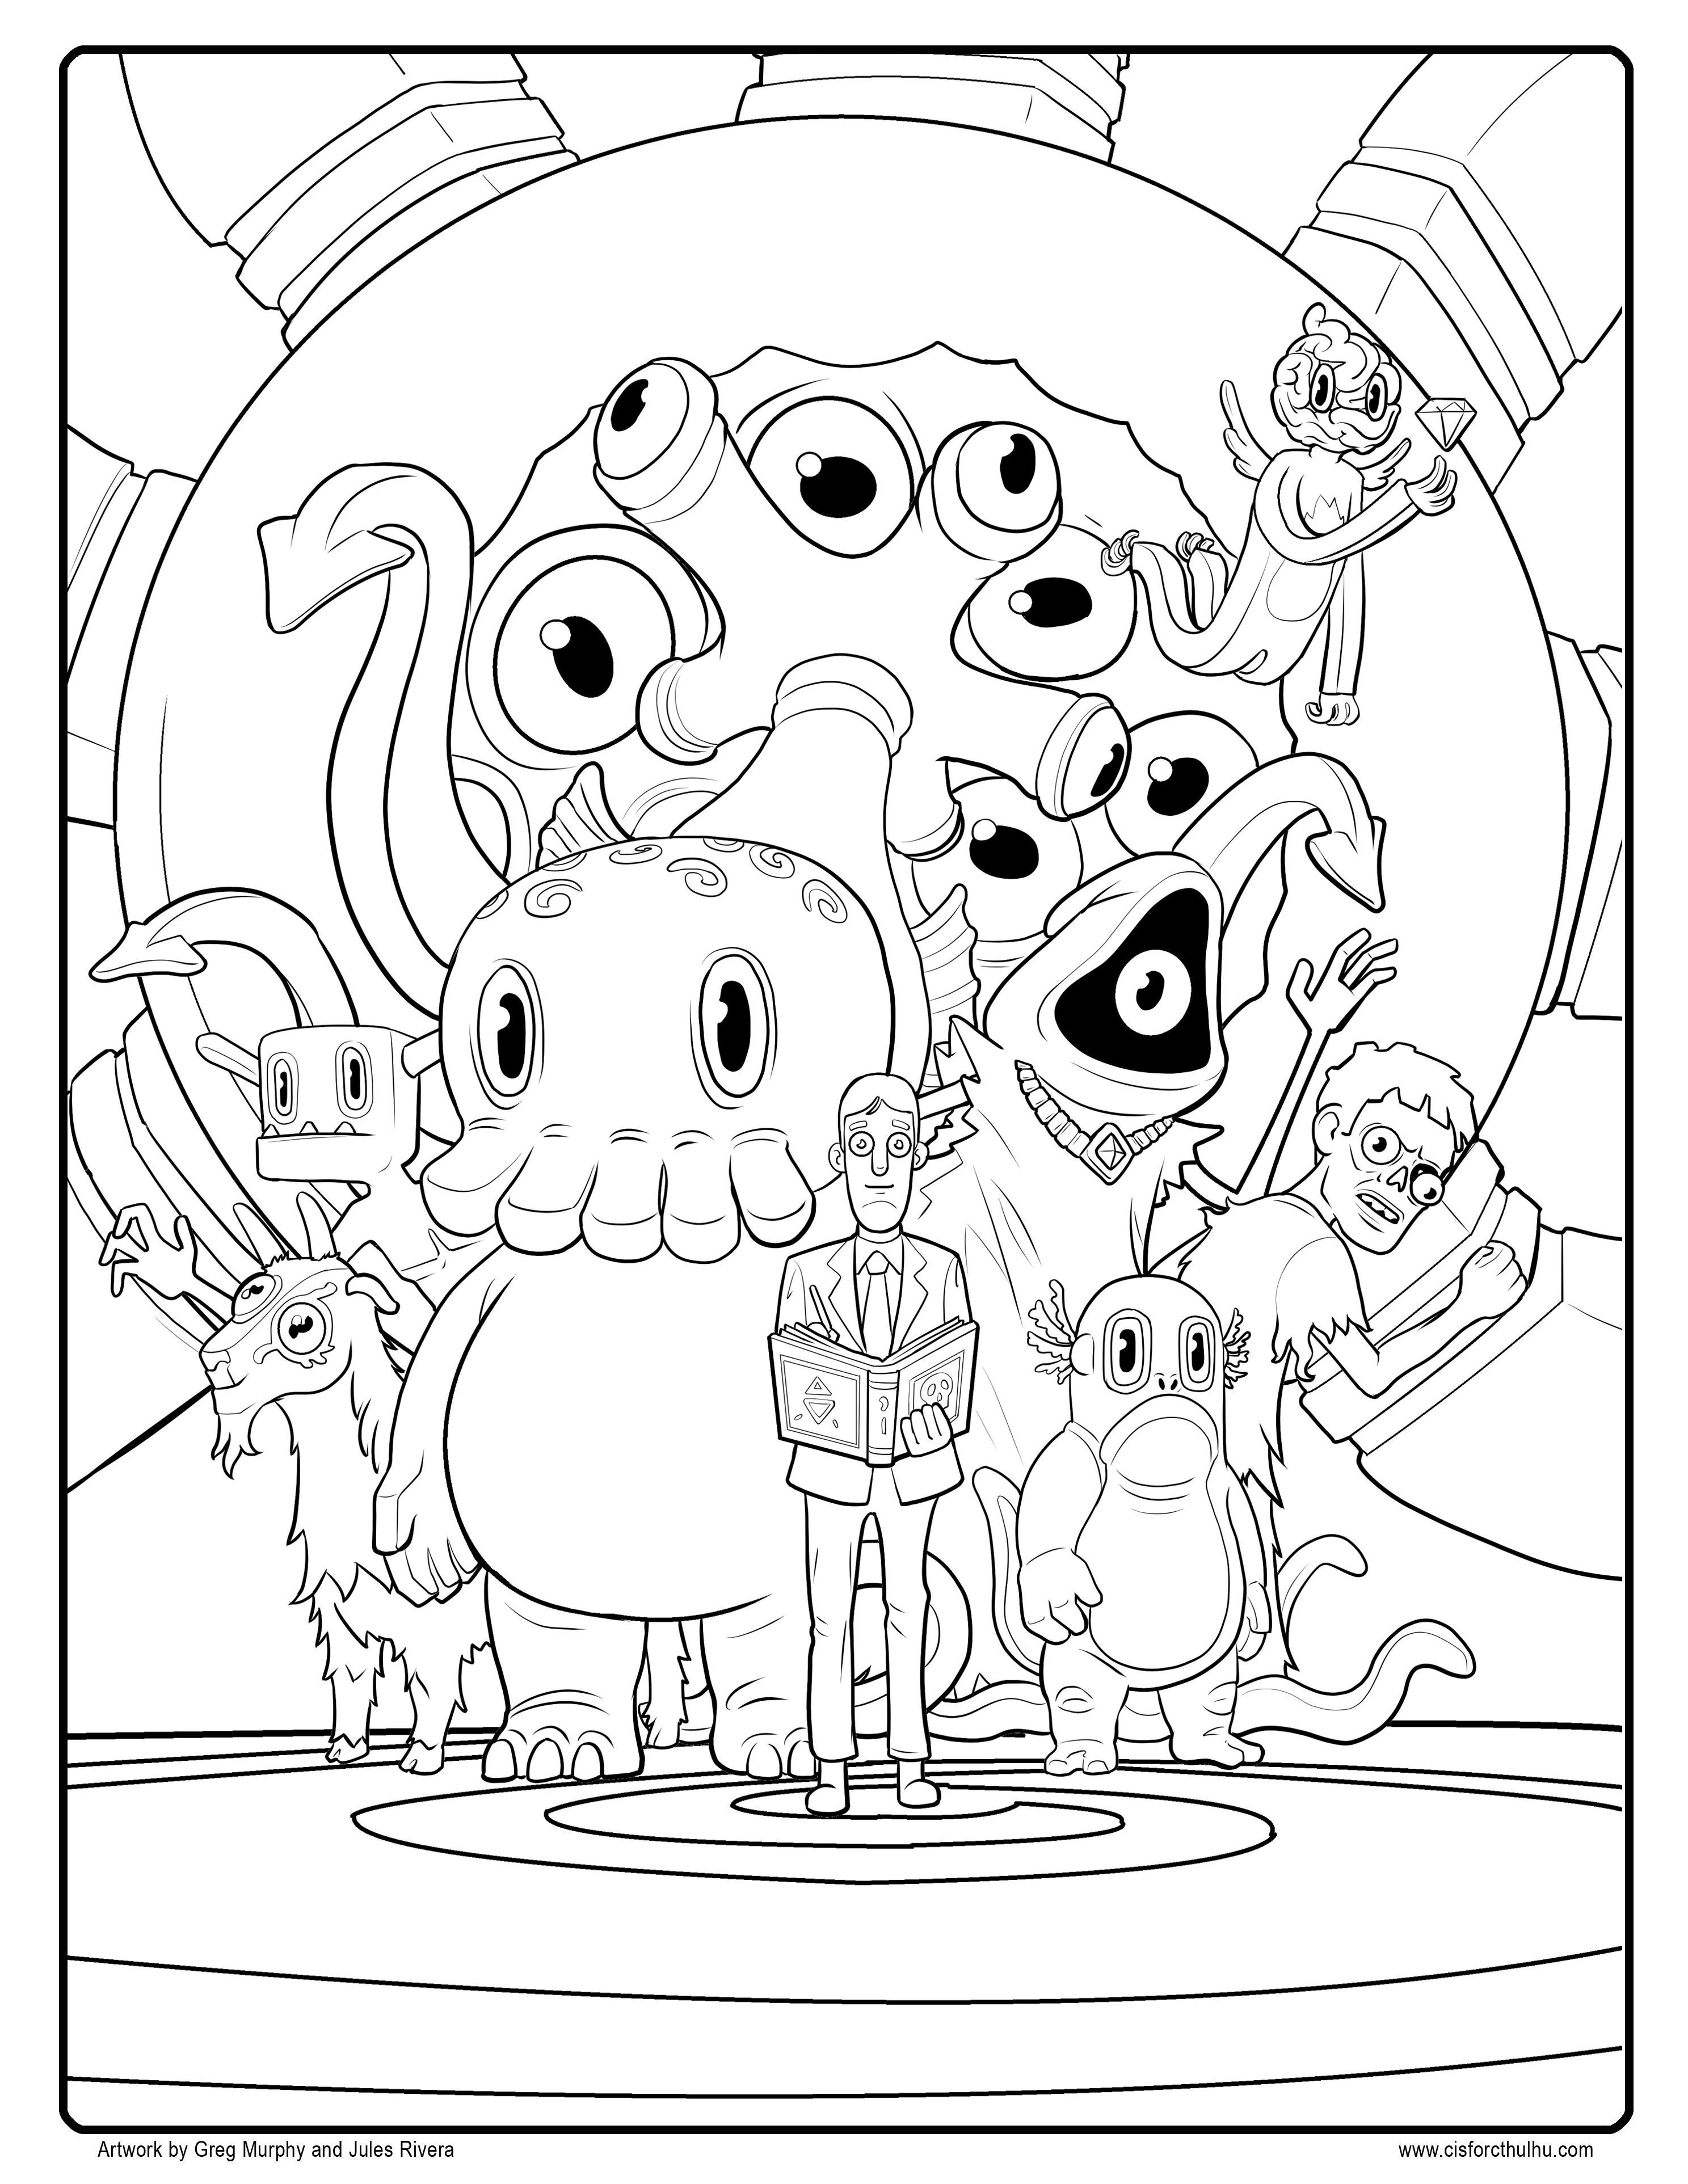 Outer Space Coloring Pages Fallout New Vegas Coloring Pages Lovely Outer Space Coloring Pages